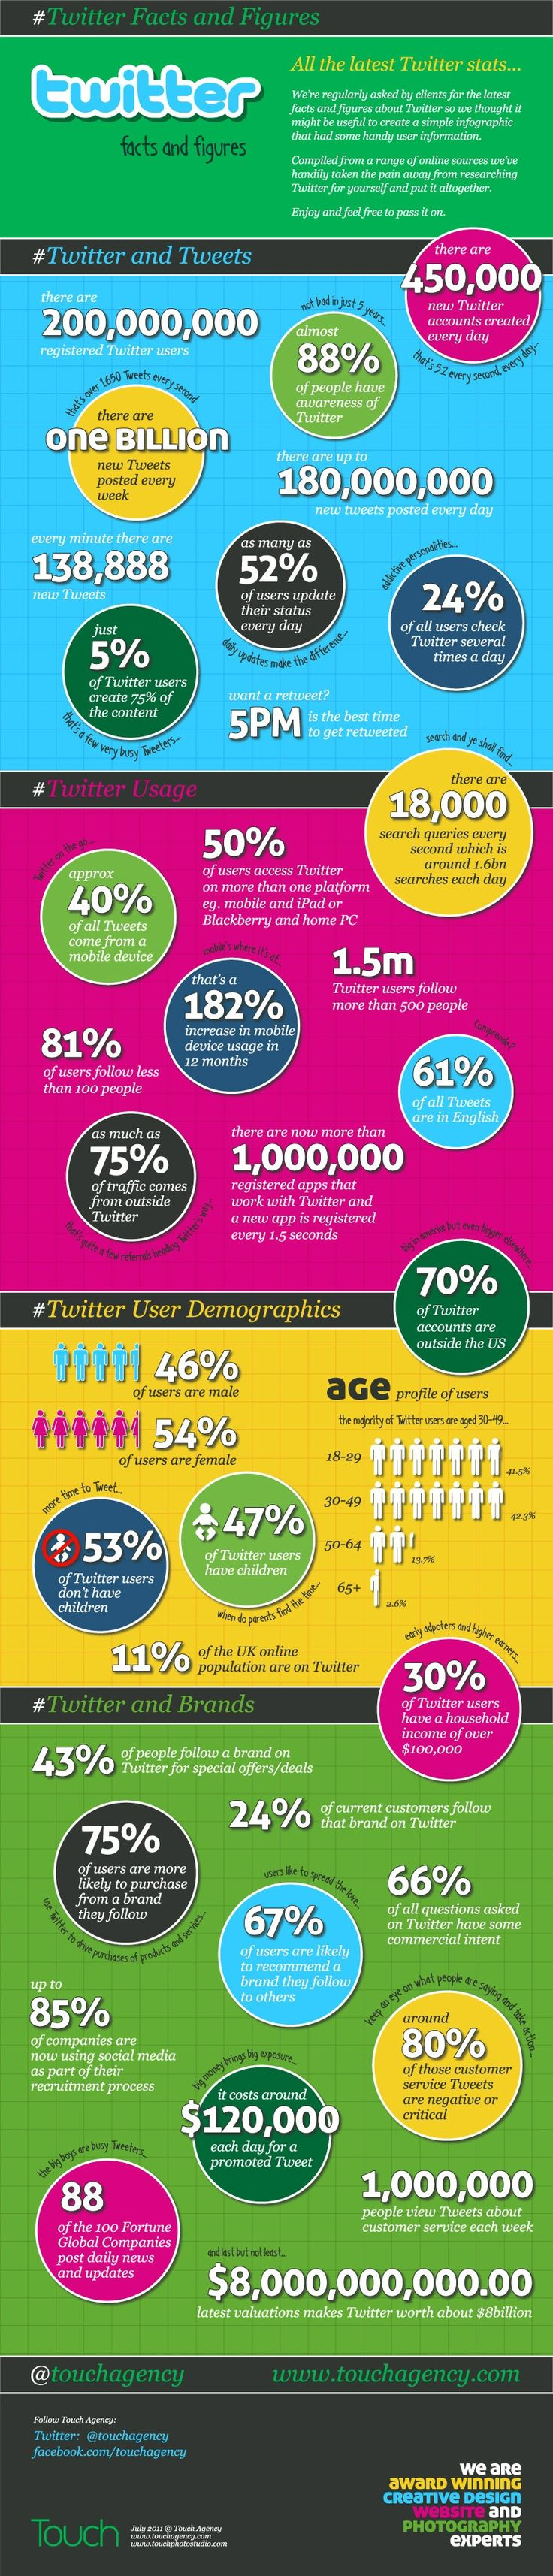 Twitter Facts and Figures  touchagency.com